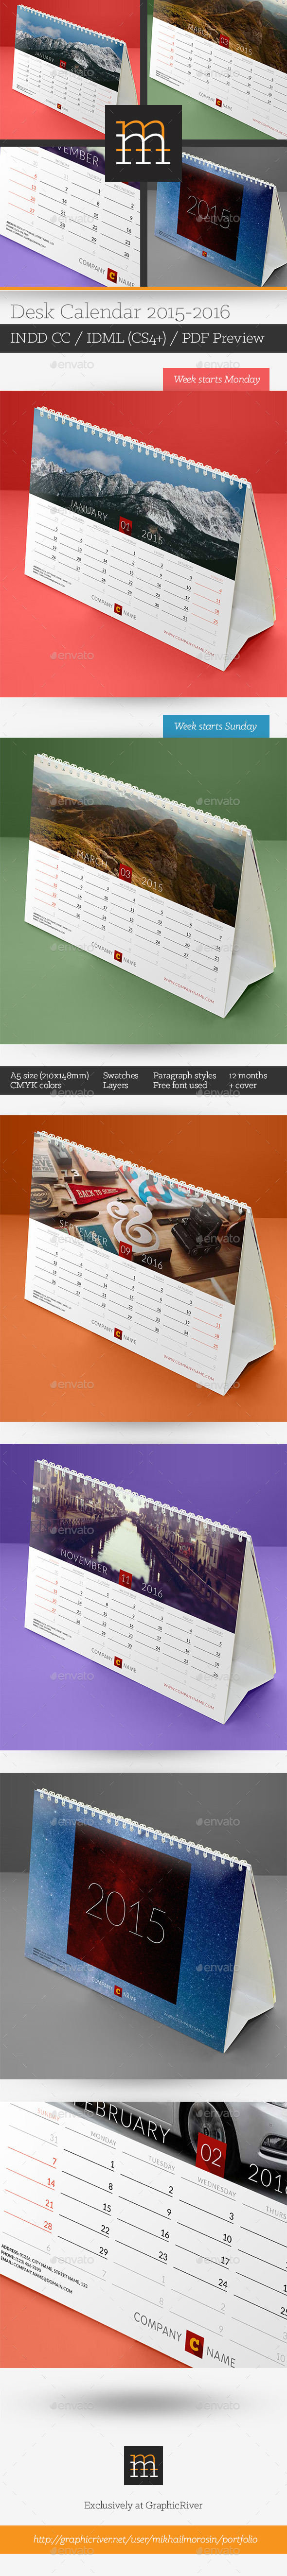 GraphicRiver Desk Calendar 2015-2016 10601940